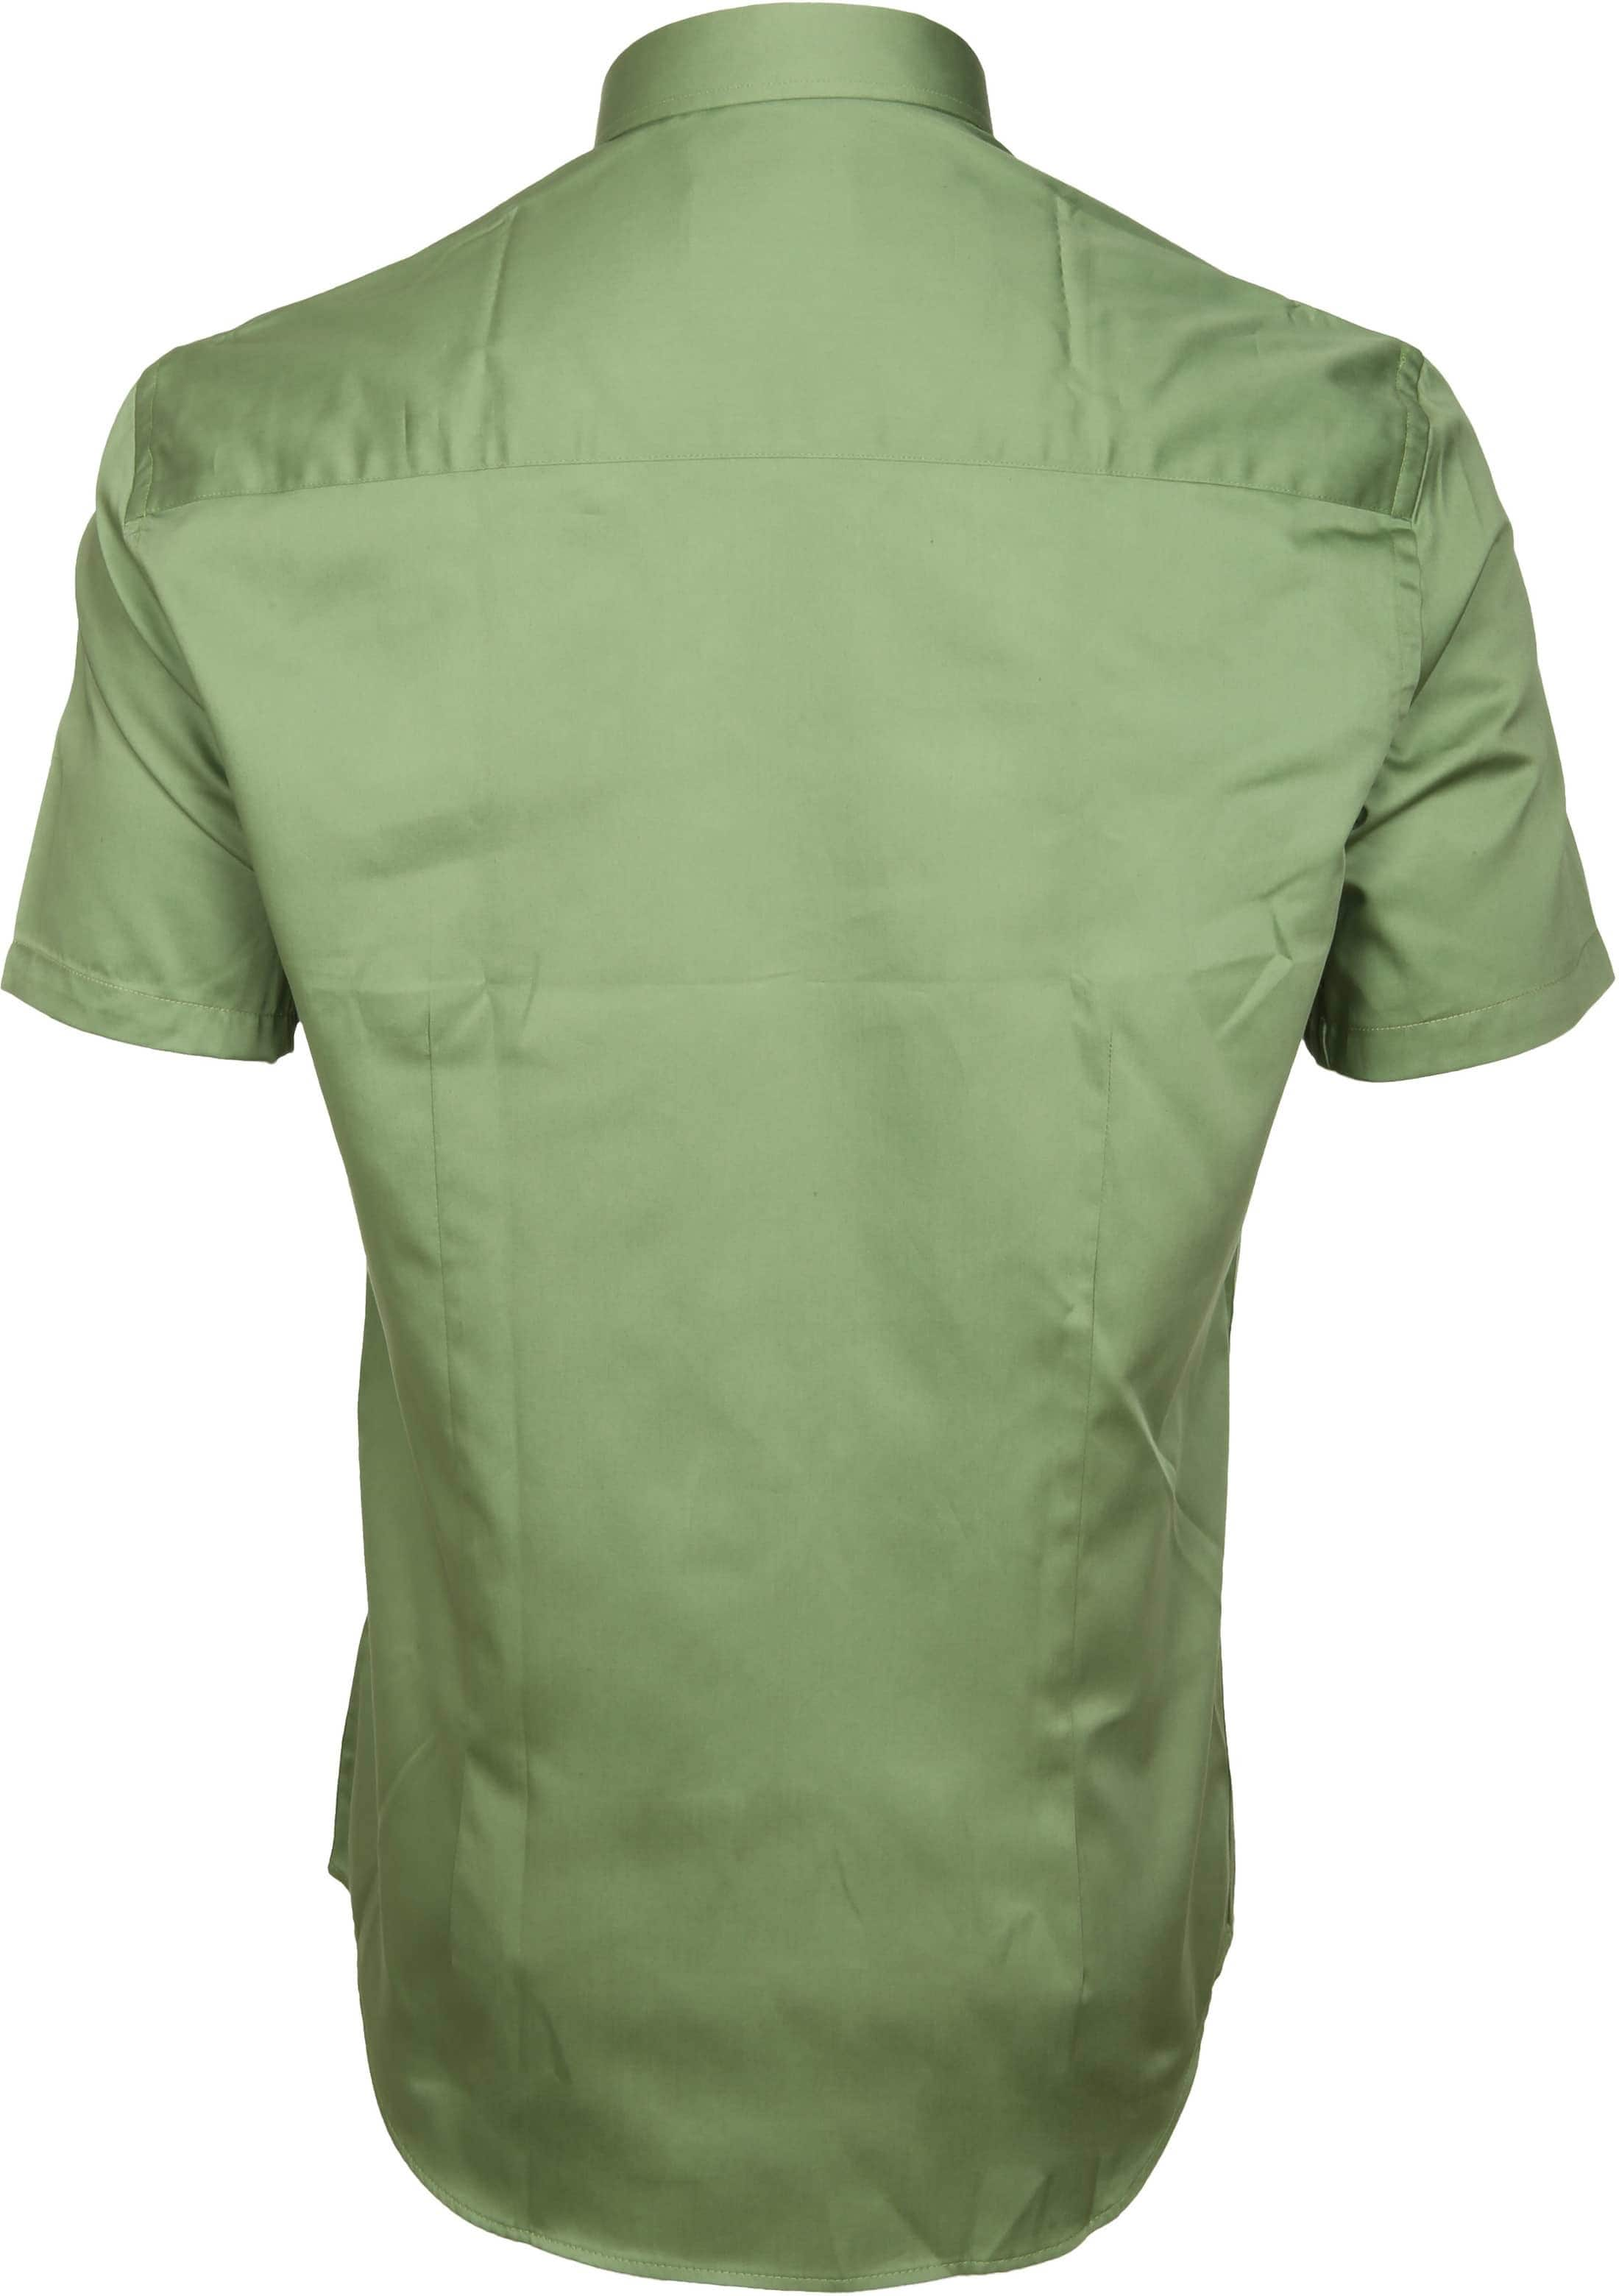 Casual Shirt Basic Green foto 2